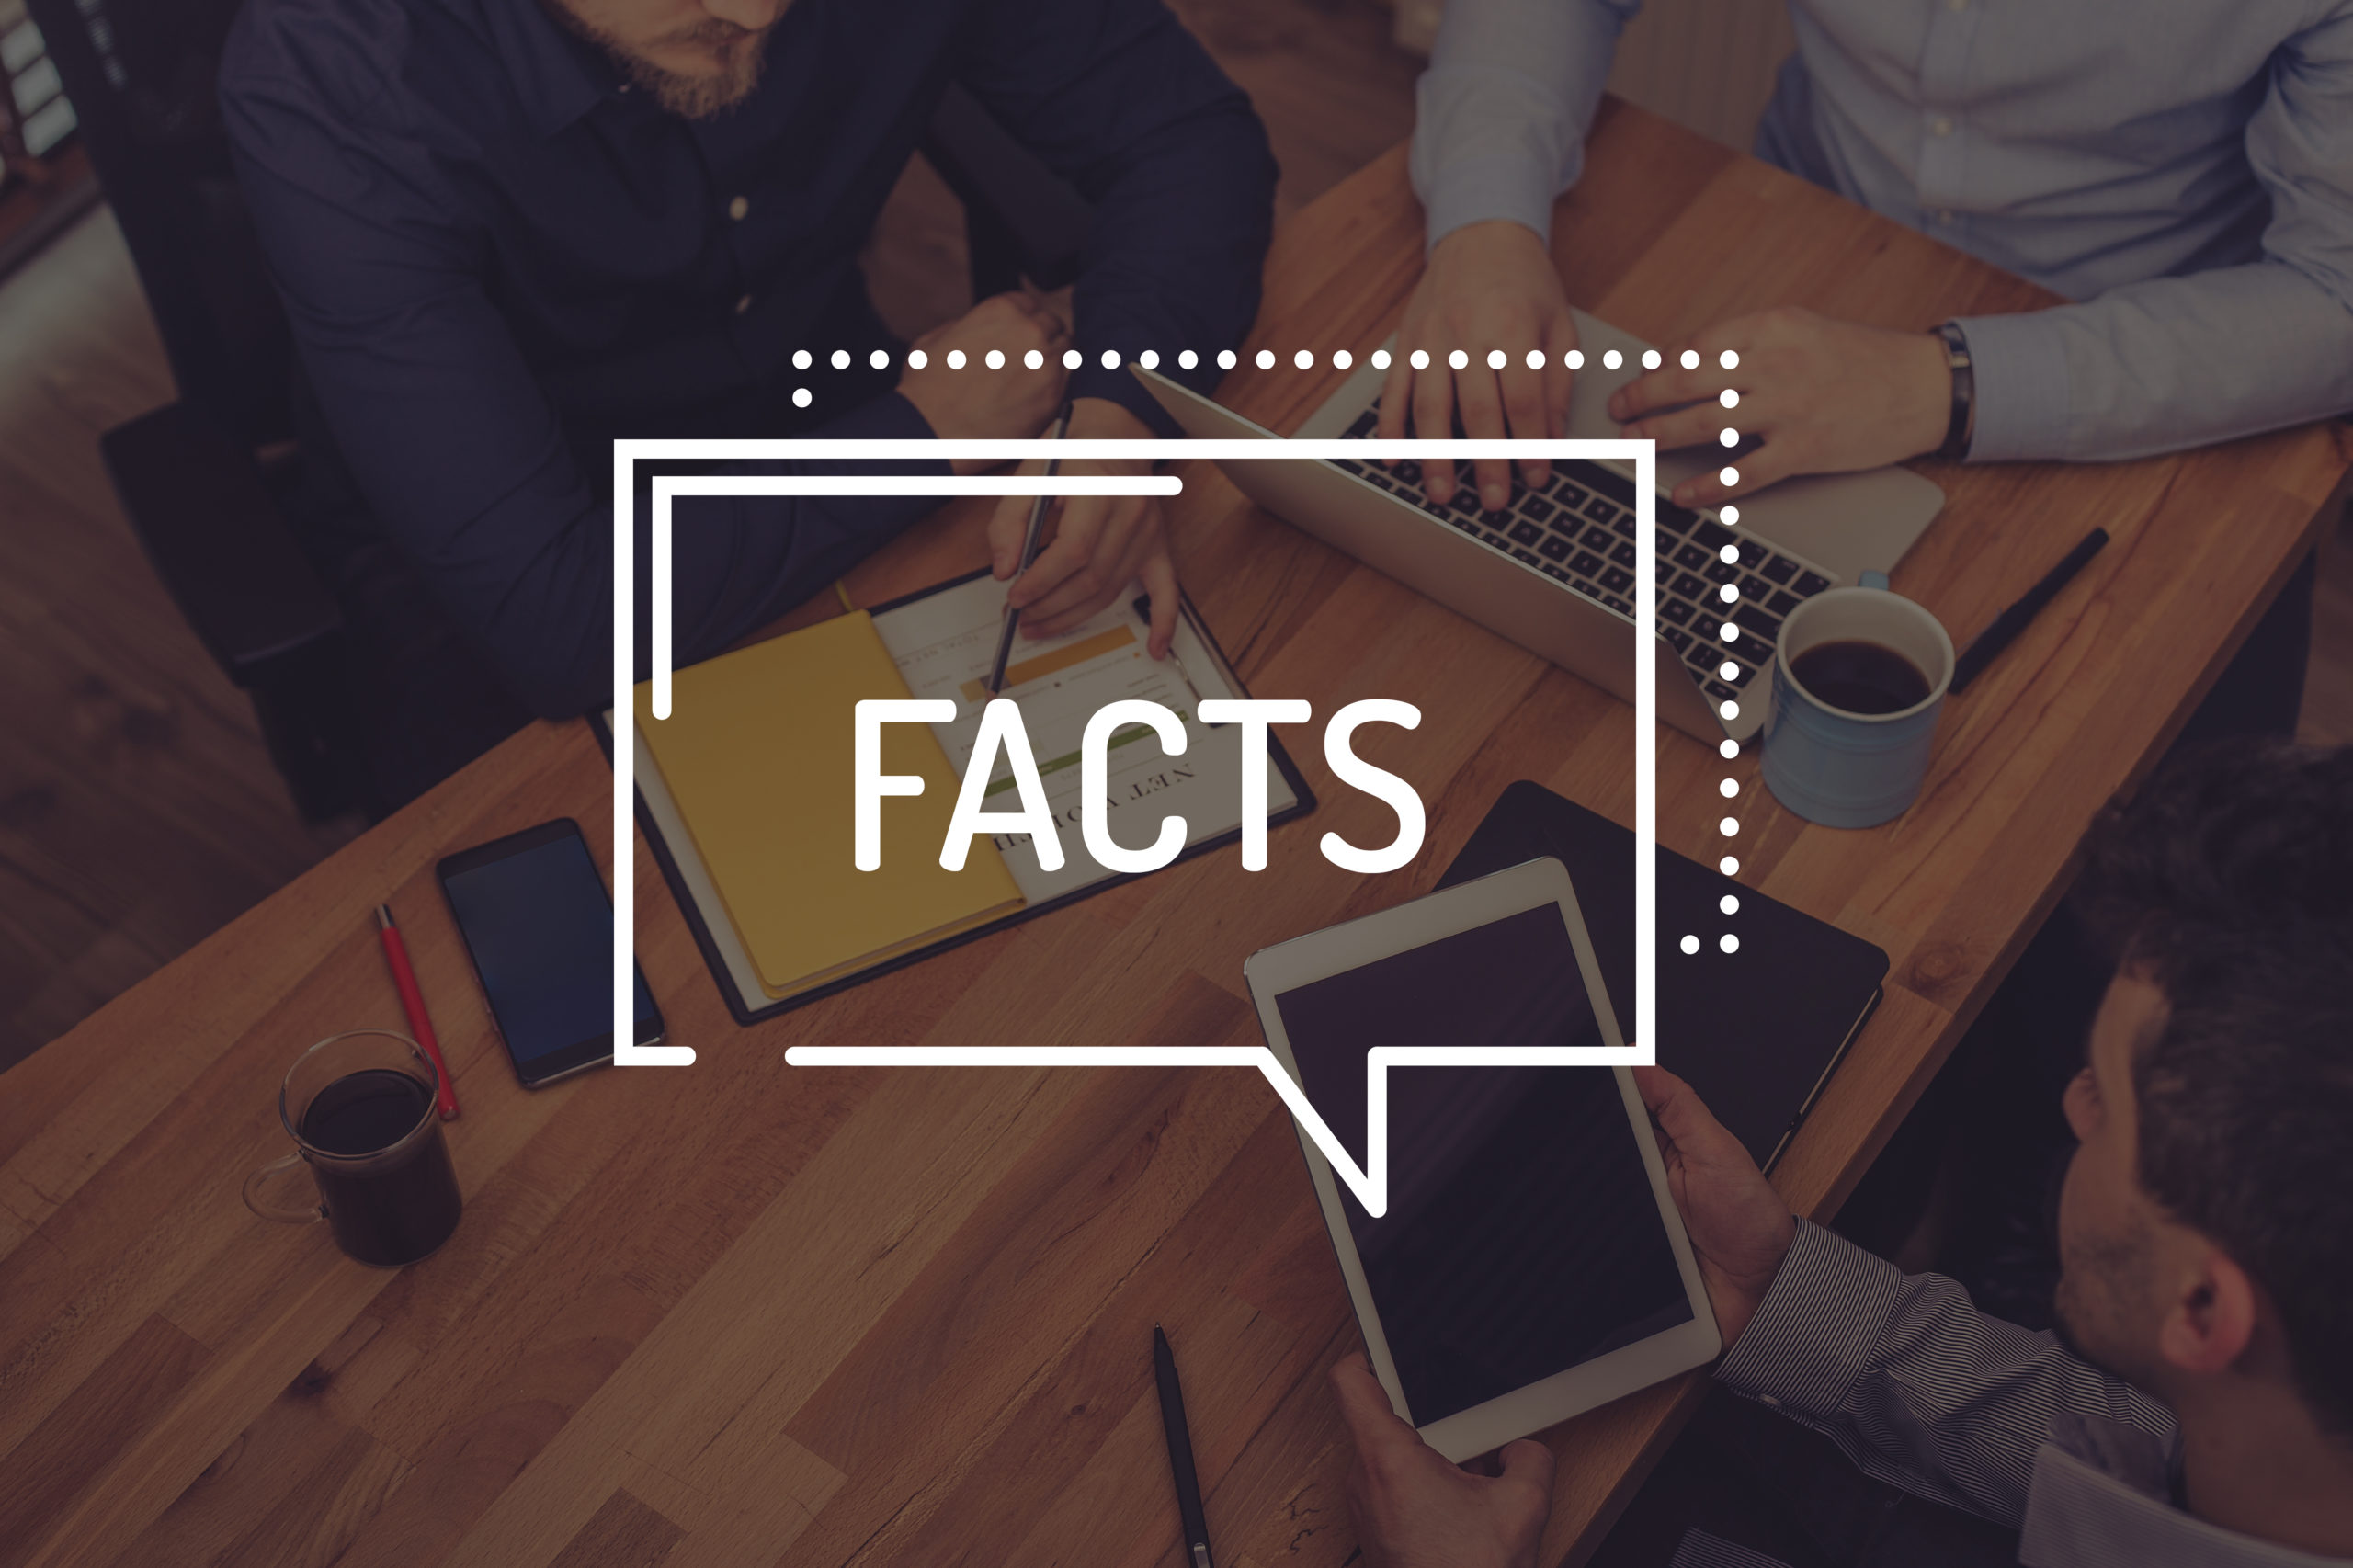 Get ready to learn things you might not know about Arabs with these interesting facts about the people and their culture.